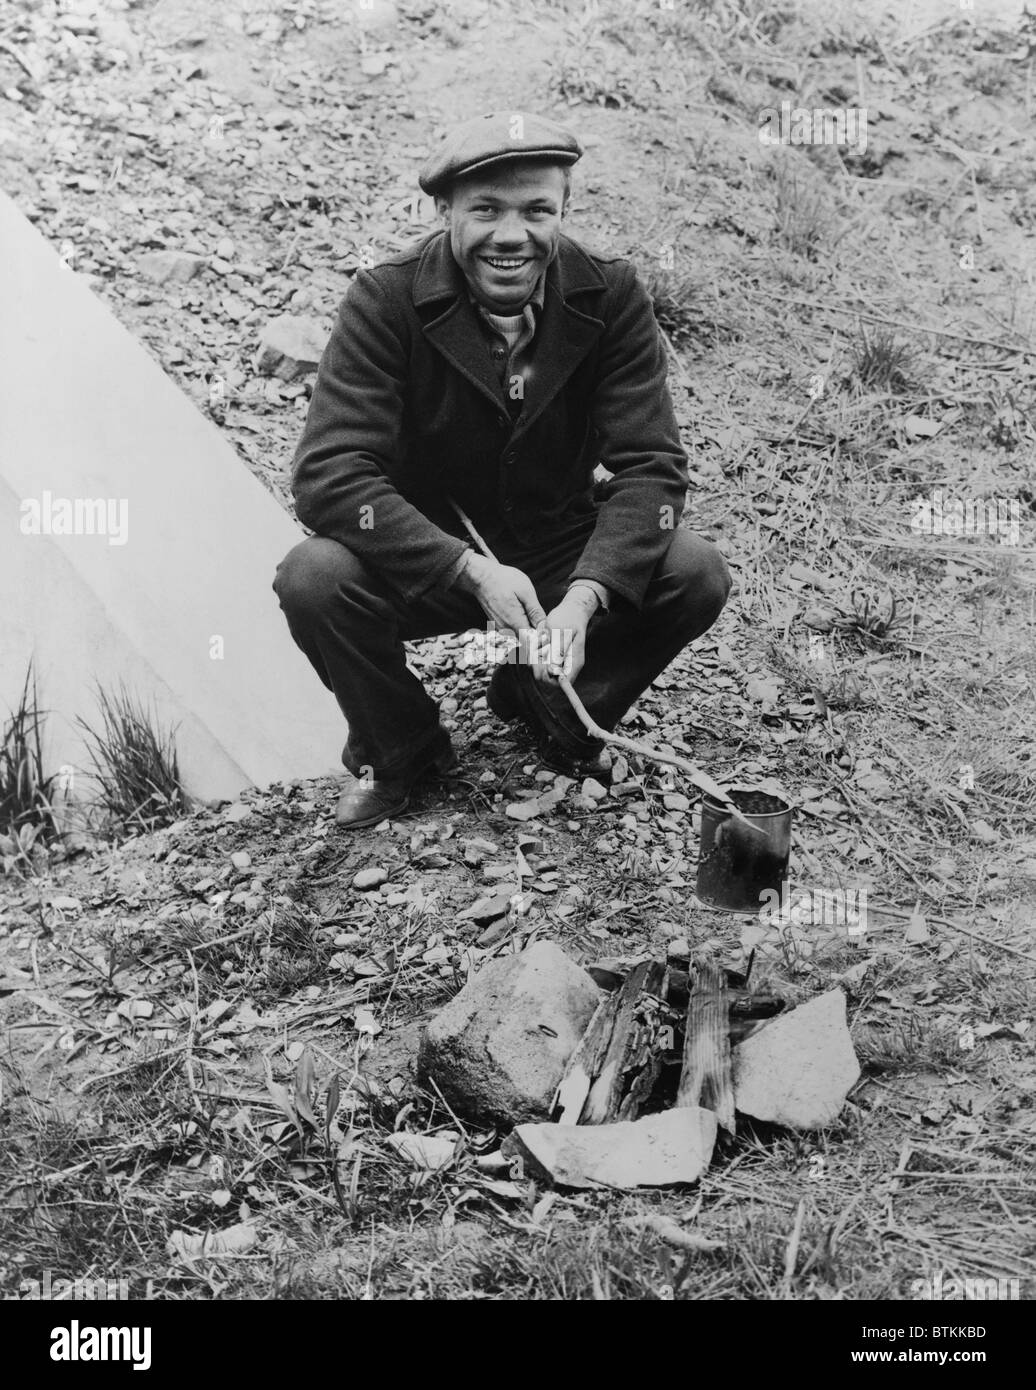 Hobo, Lou Ambers, cooking over a campfire with a tin can on a stick, during the Great Depression. 1935. - Stock Image